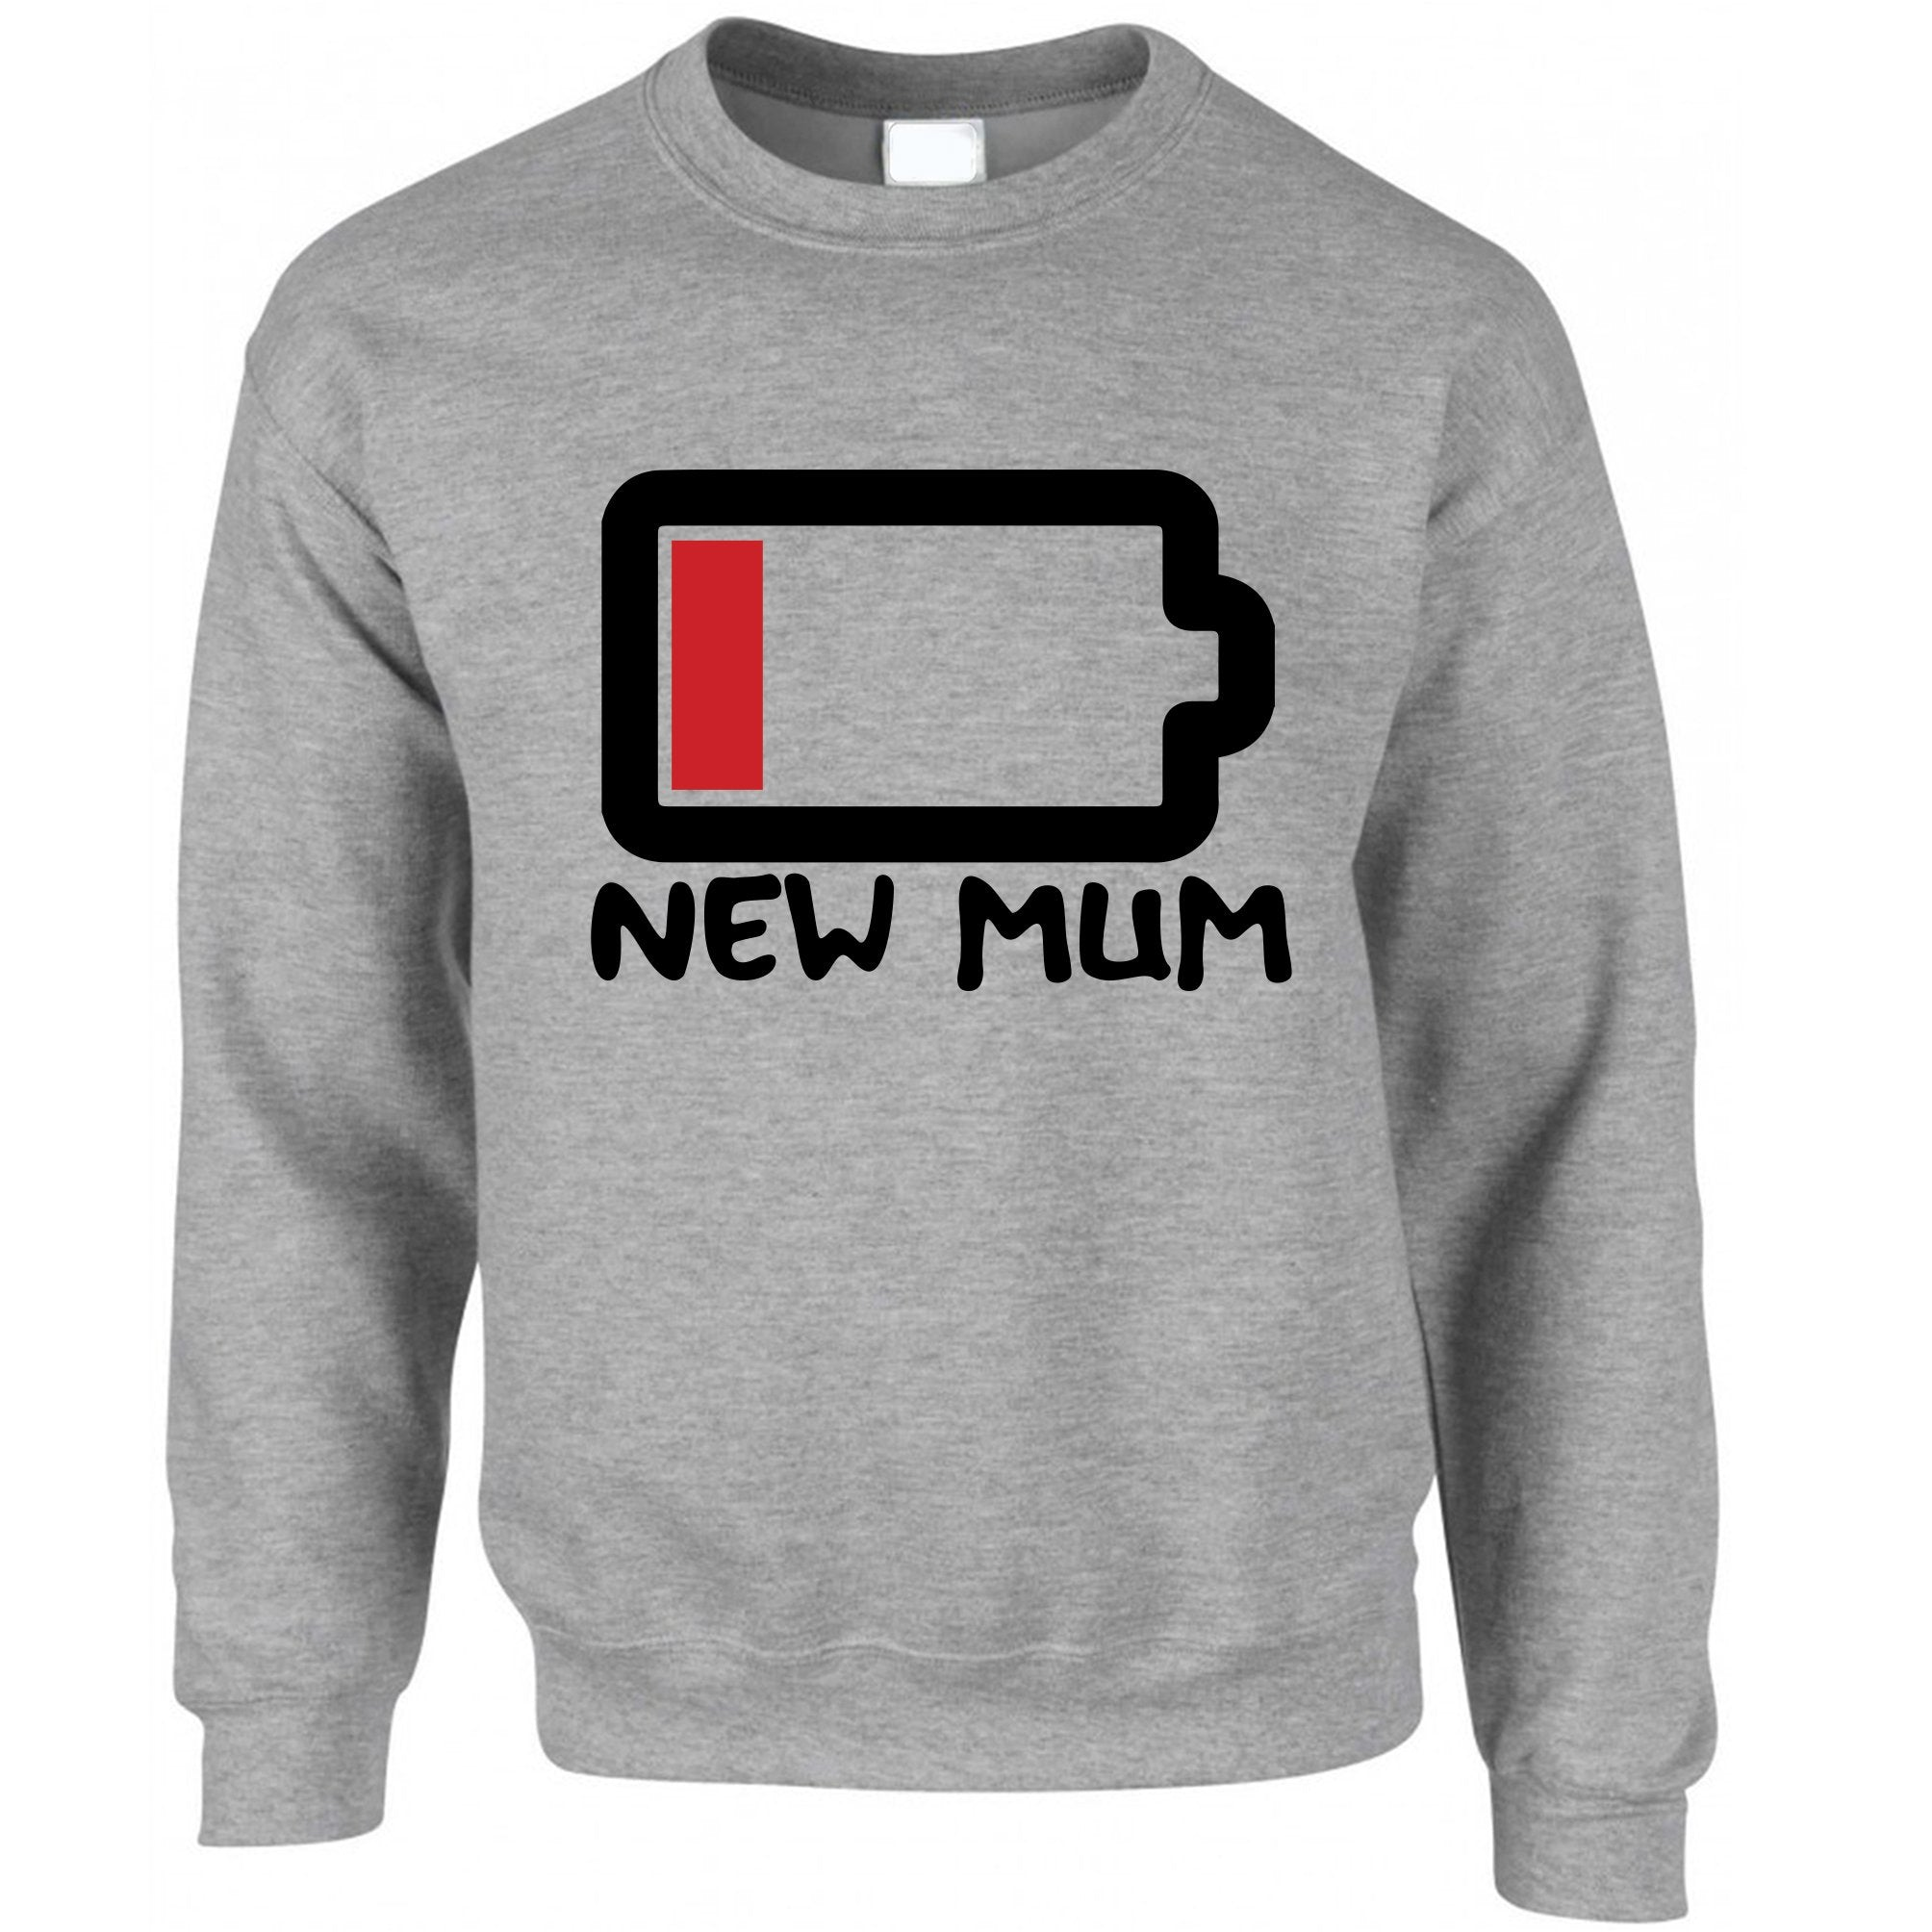 New Mum Jumper Low Battery Remaining Novelty Joke Sweatshirt Sweater